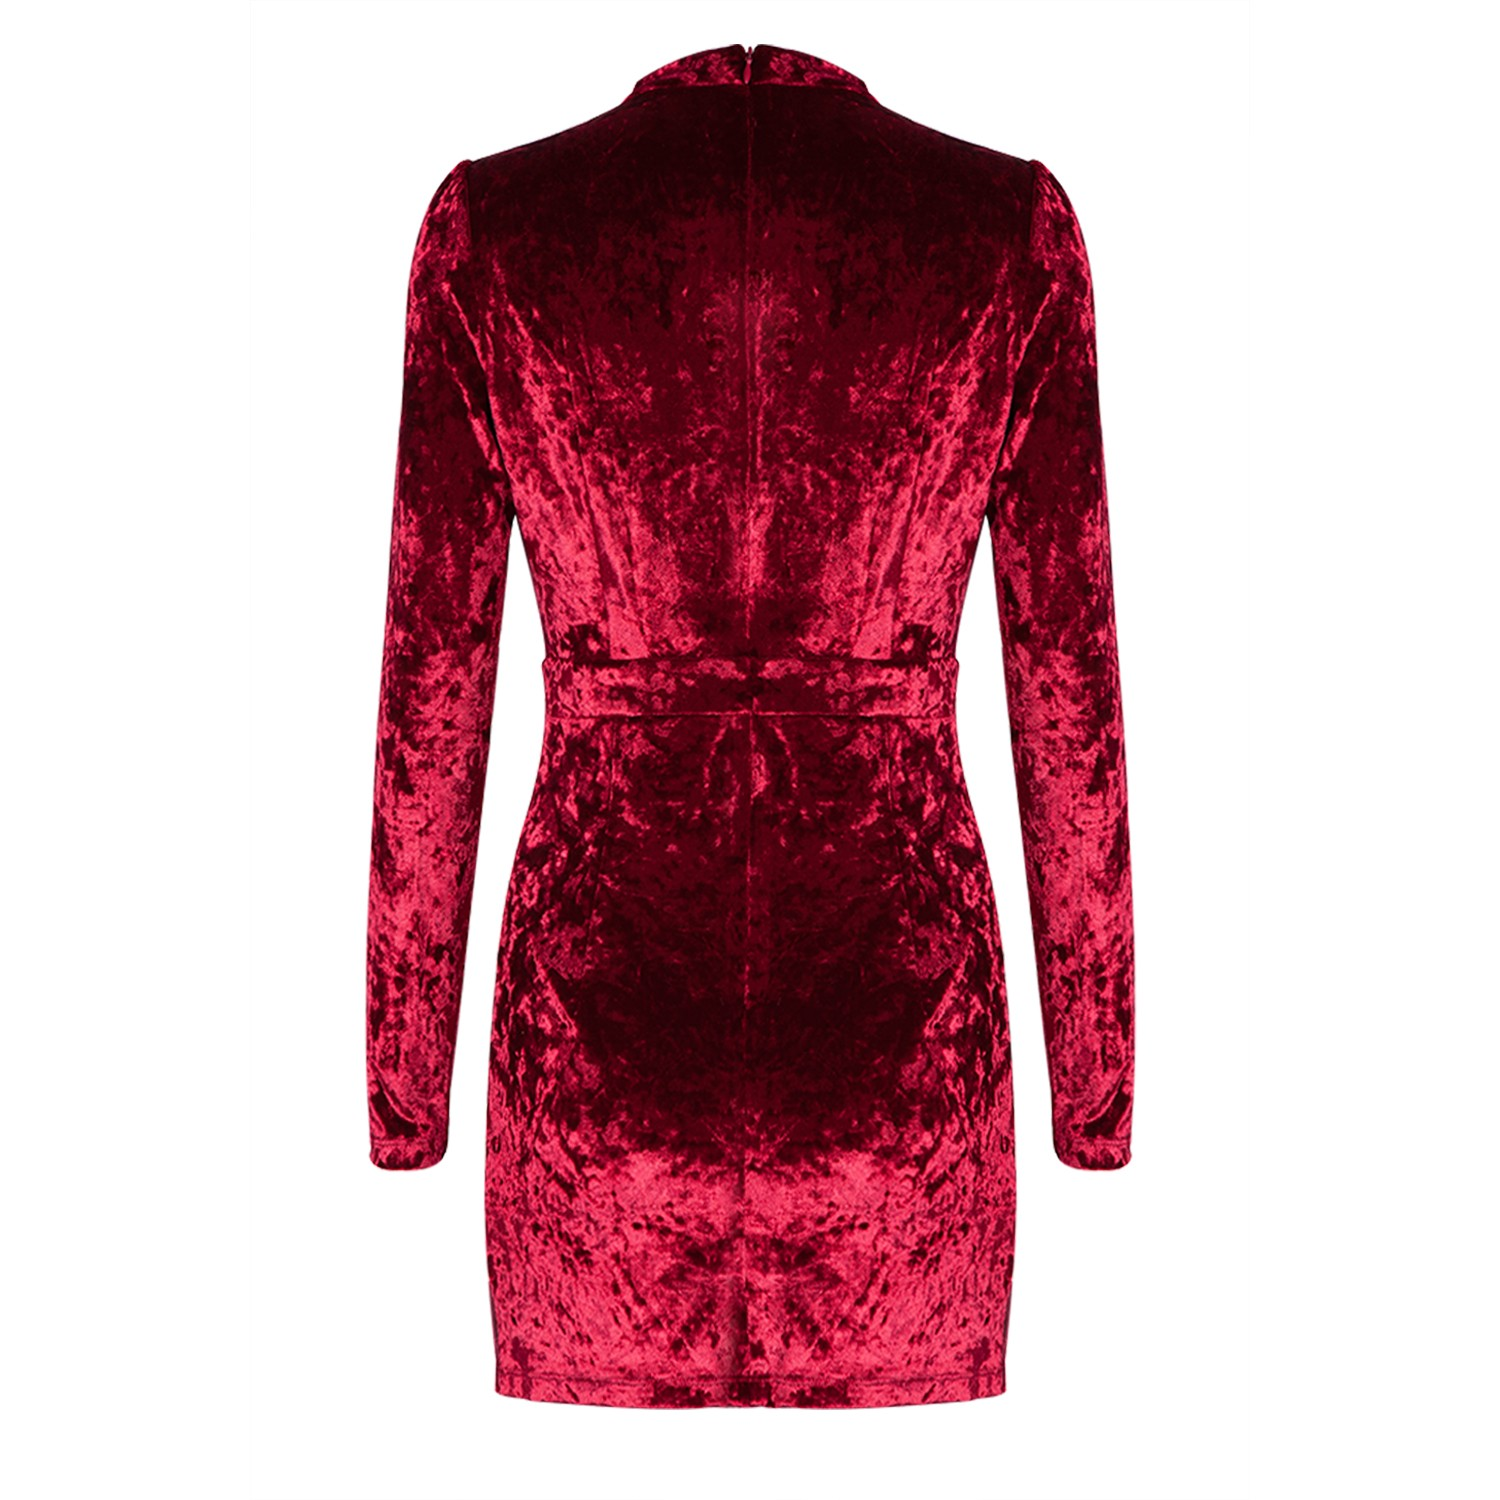 Wine V Neck Long Sleeve Mini Graceful Fashion Velvet Dress HB924-Wine